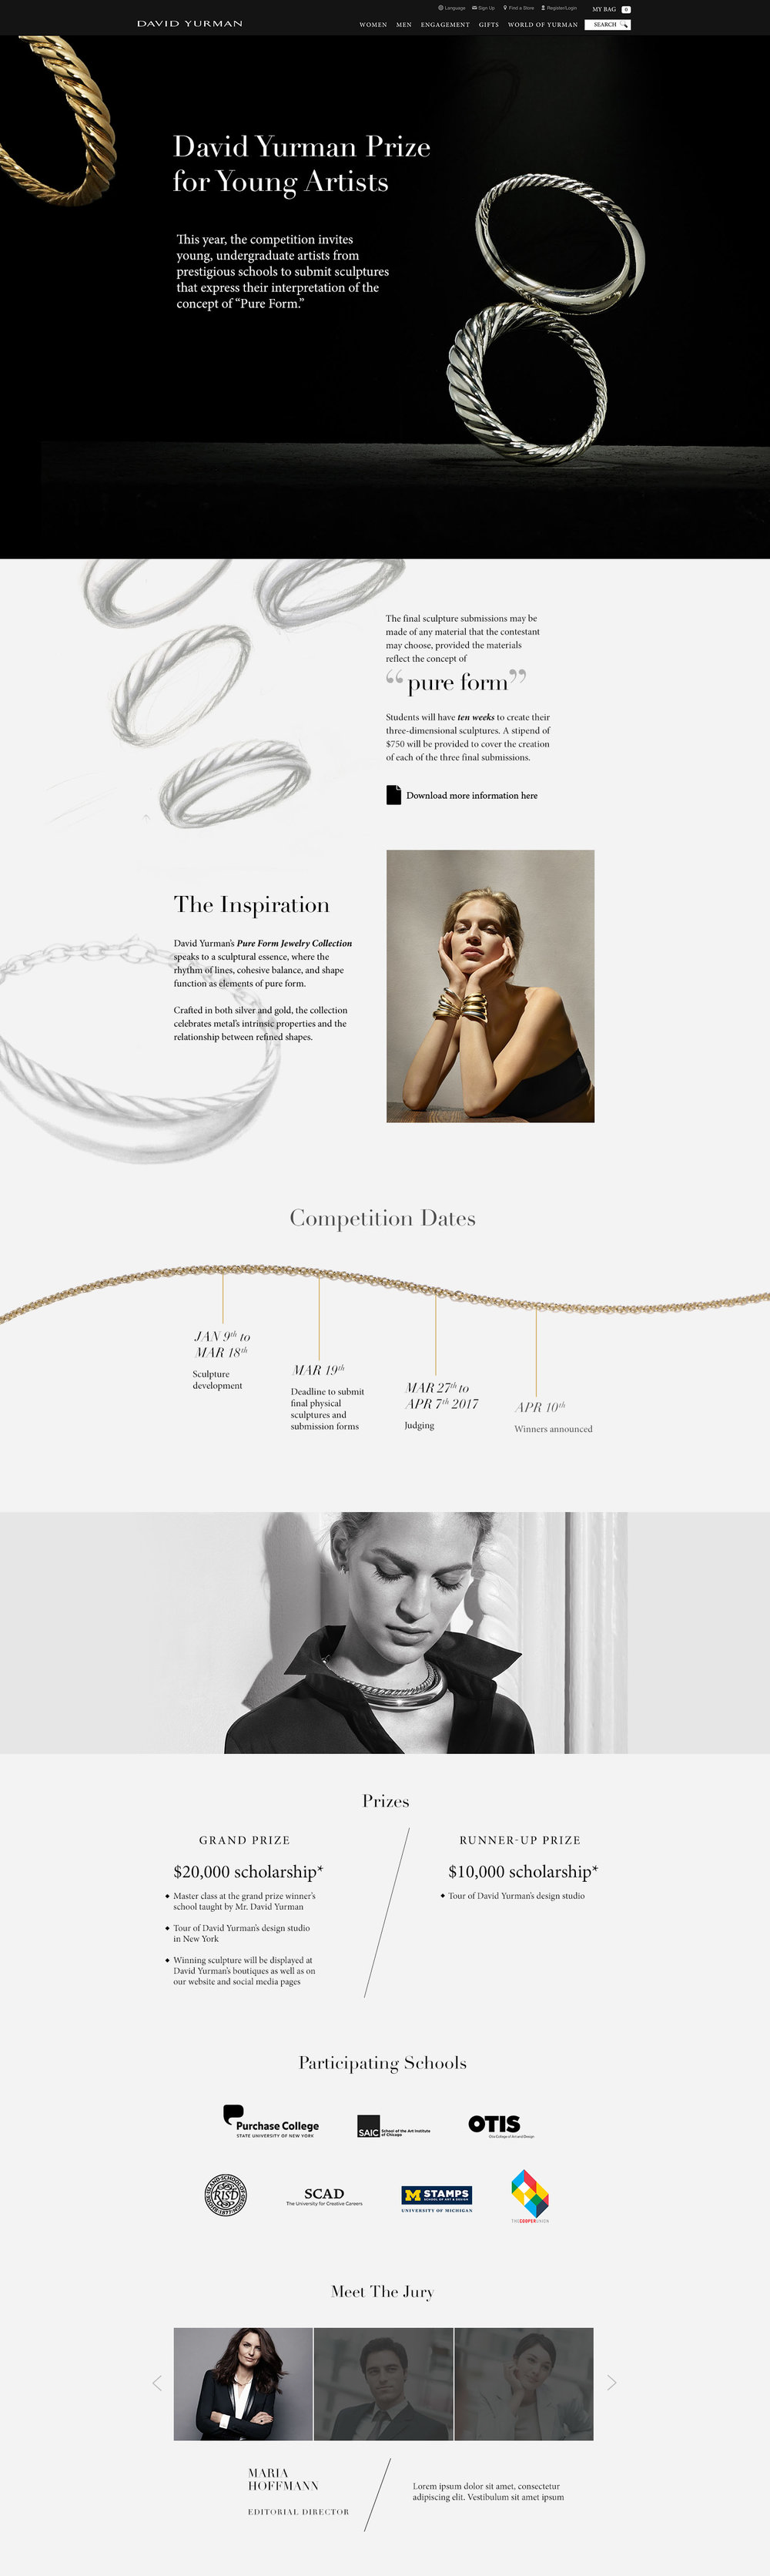 Pure Form Landing page 3.jpg